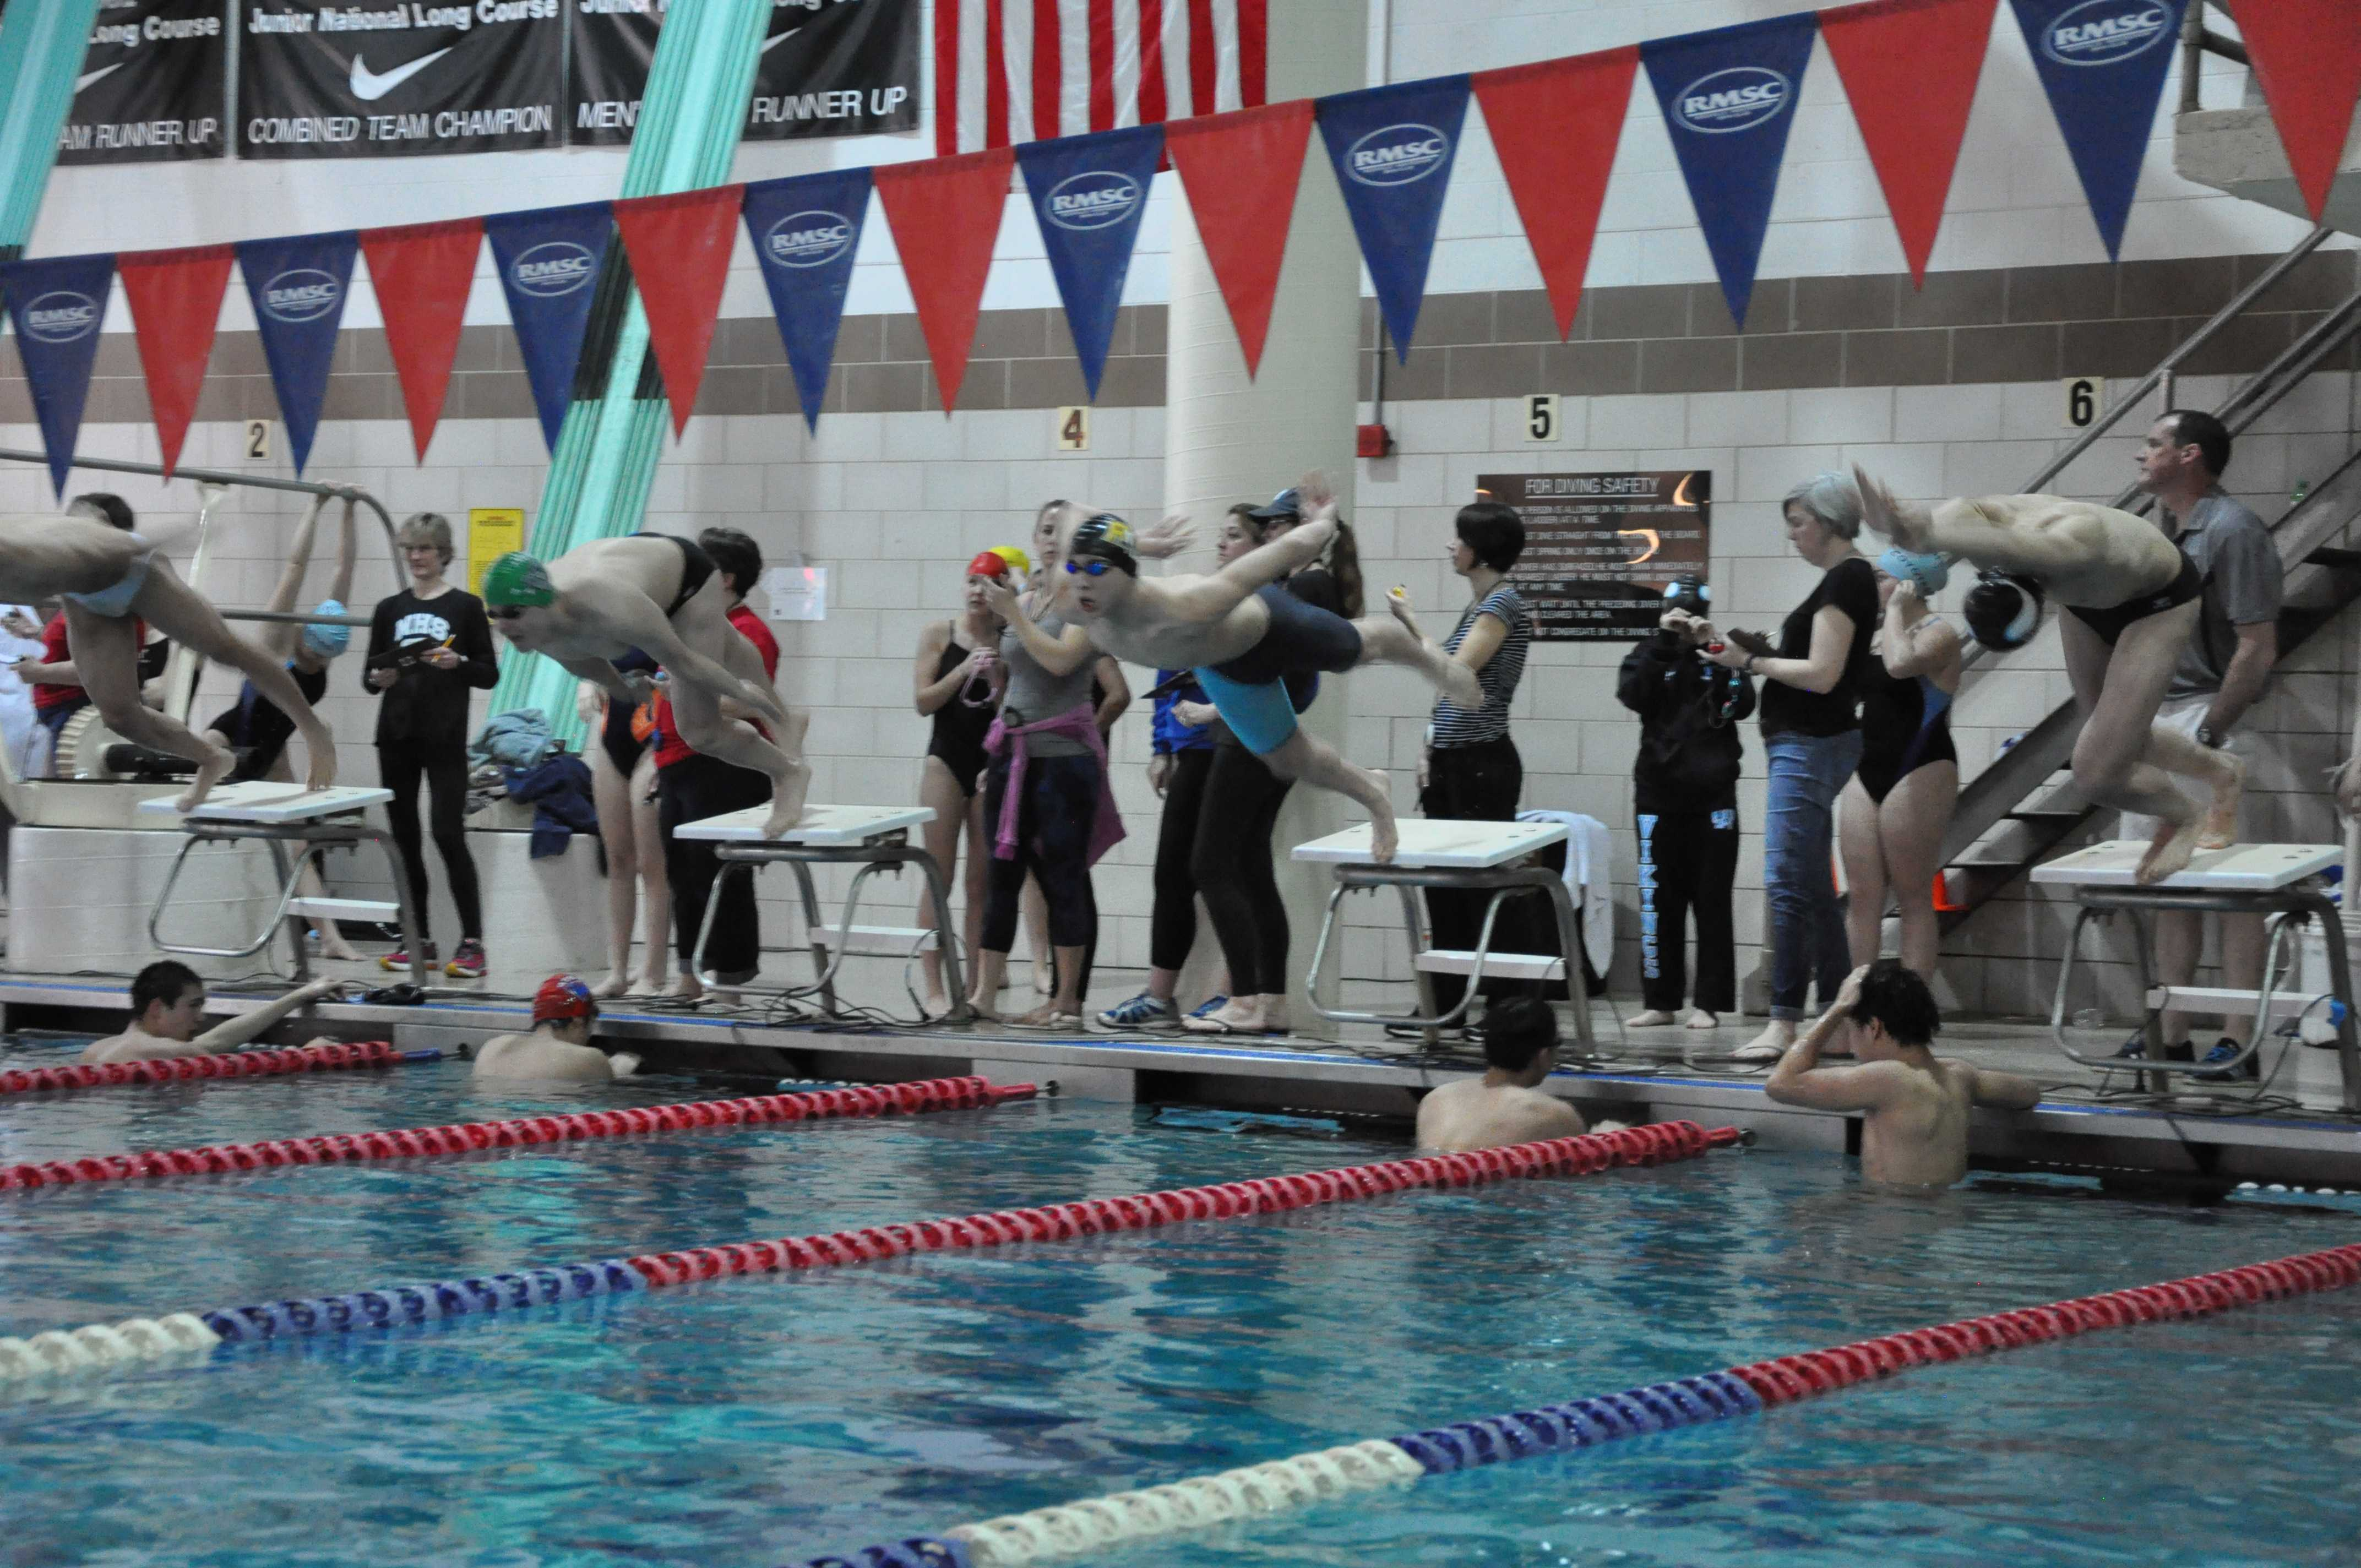 RM boys swim and dive team take 1st place victory at regionals meet, girls fall short with 4th place